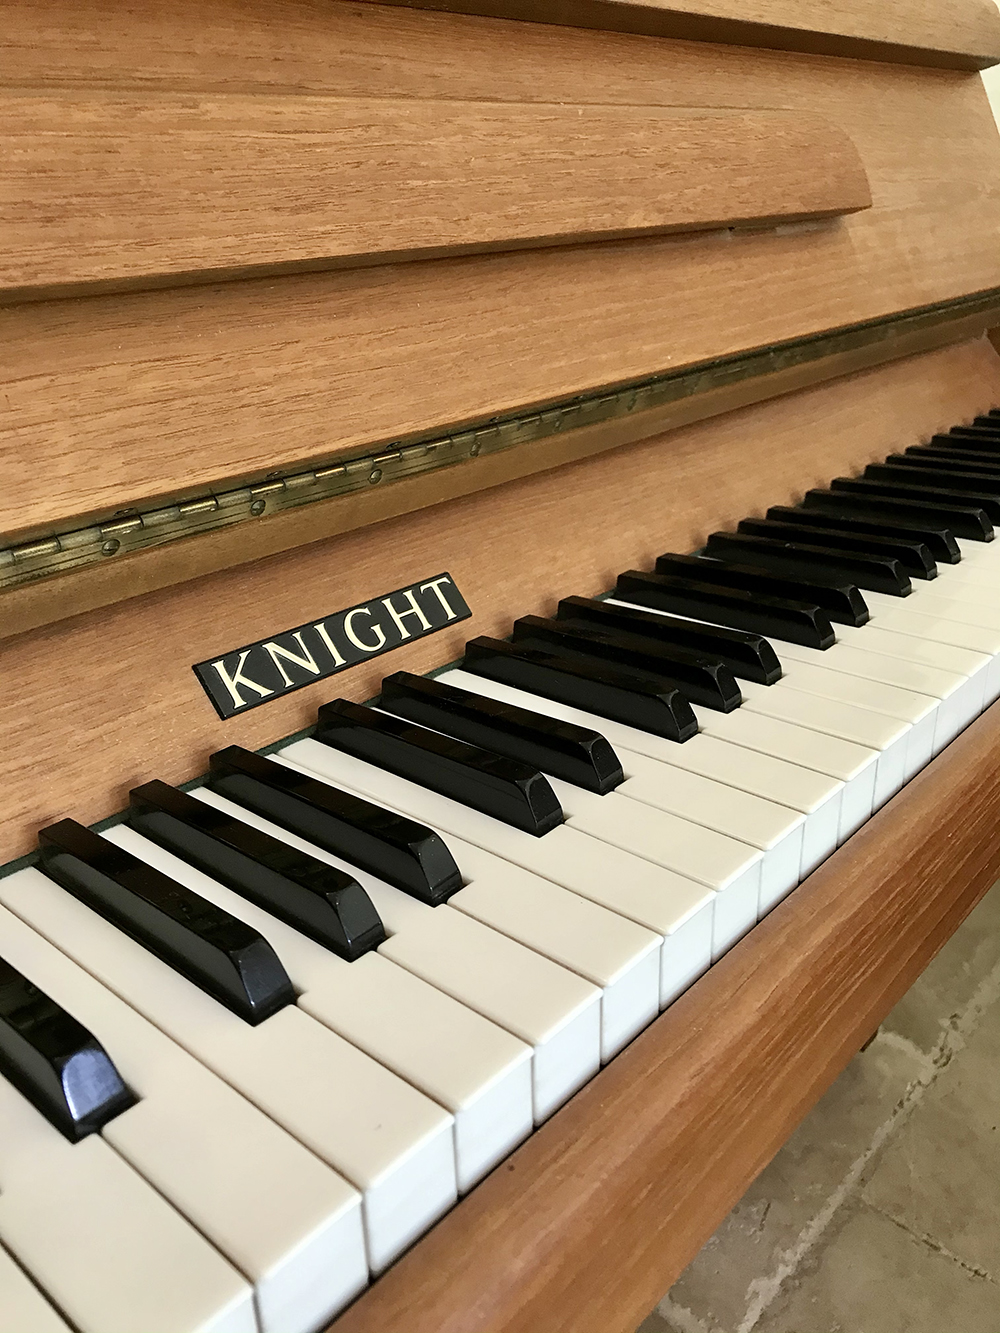 knight-k10-used-upright-Piano-Dorset-for-sale-7.jpg